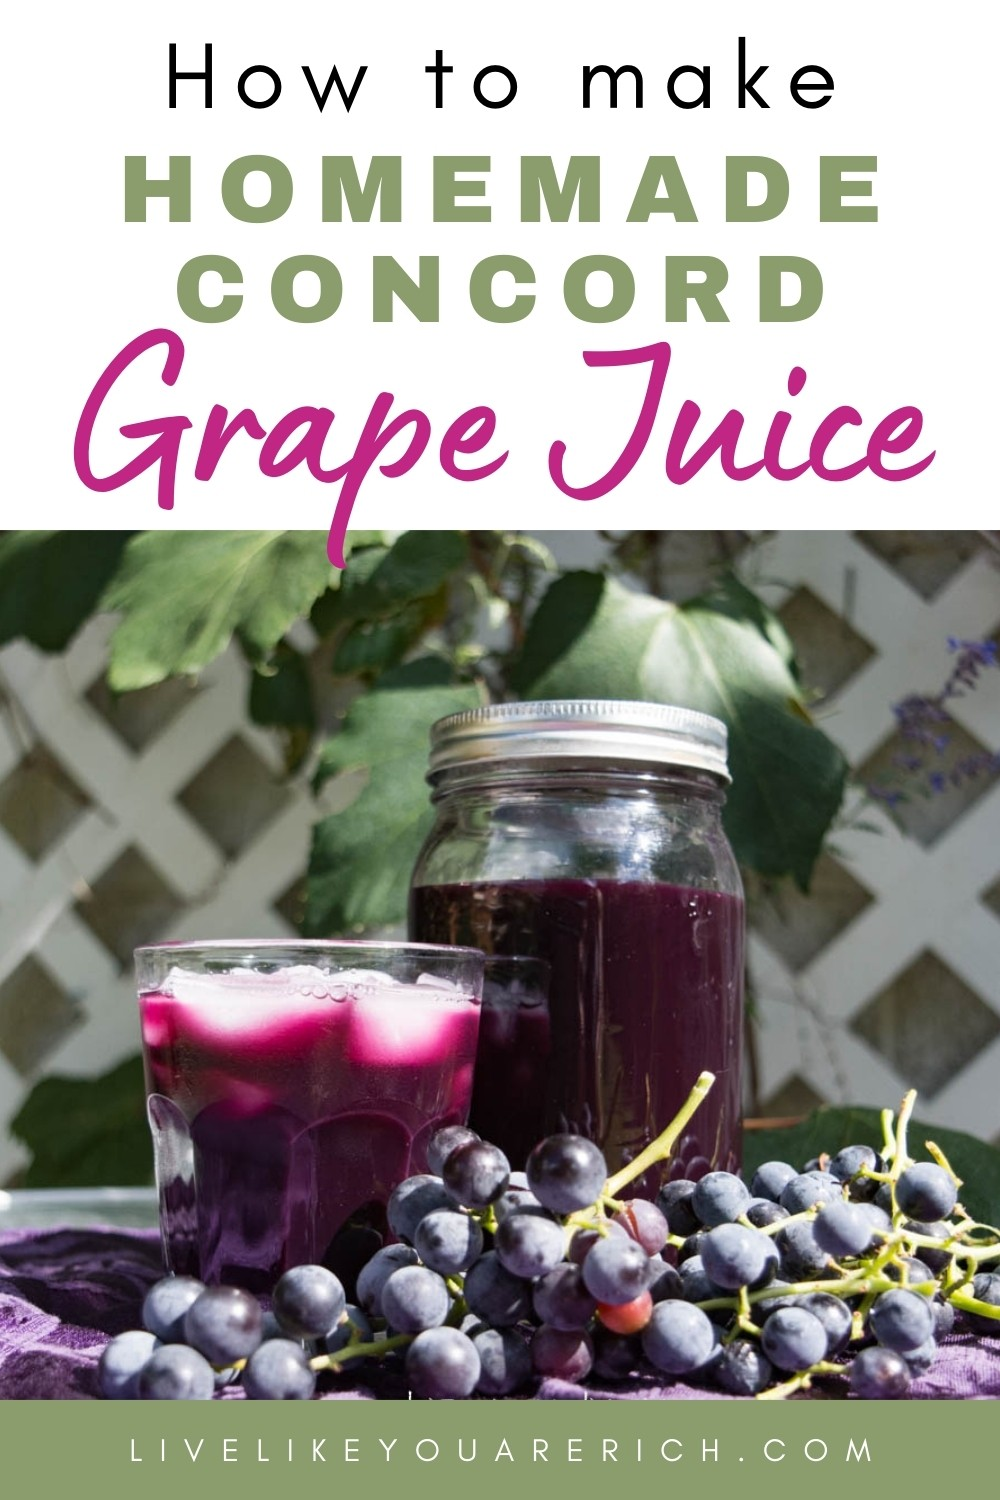 My mom has been an avid concord grape grower. She has many beautiful vines that produce a lot of grapes each Fall. Each Fall, we pick the grapes and juice them. My family and friends love the grape juice — especially mixed with Sprite or pink lemonade and chilled with ice. I'm sharing how she makes this homemade concord grape juice recipe. #grapejuice #concordgrapejuice